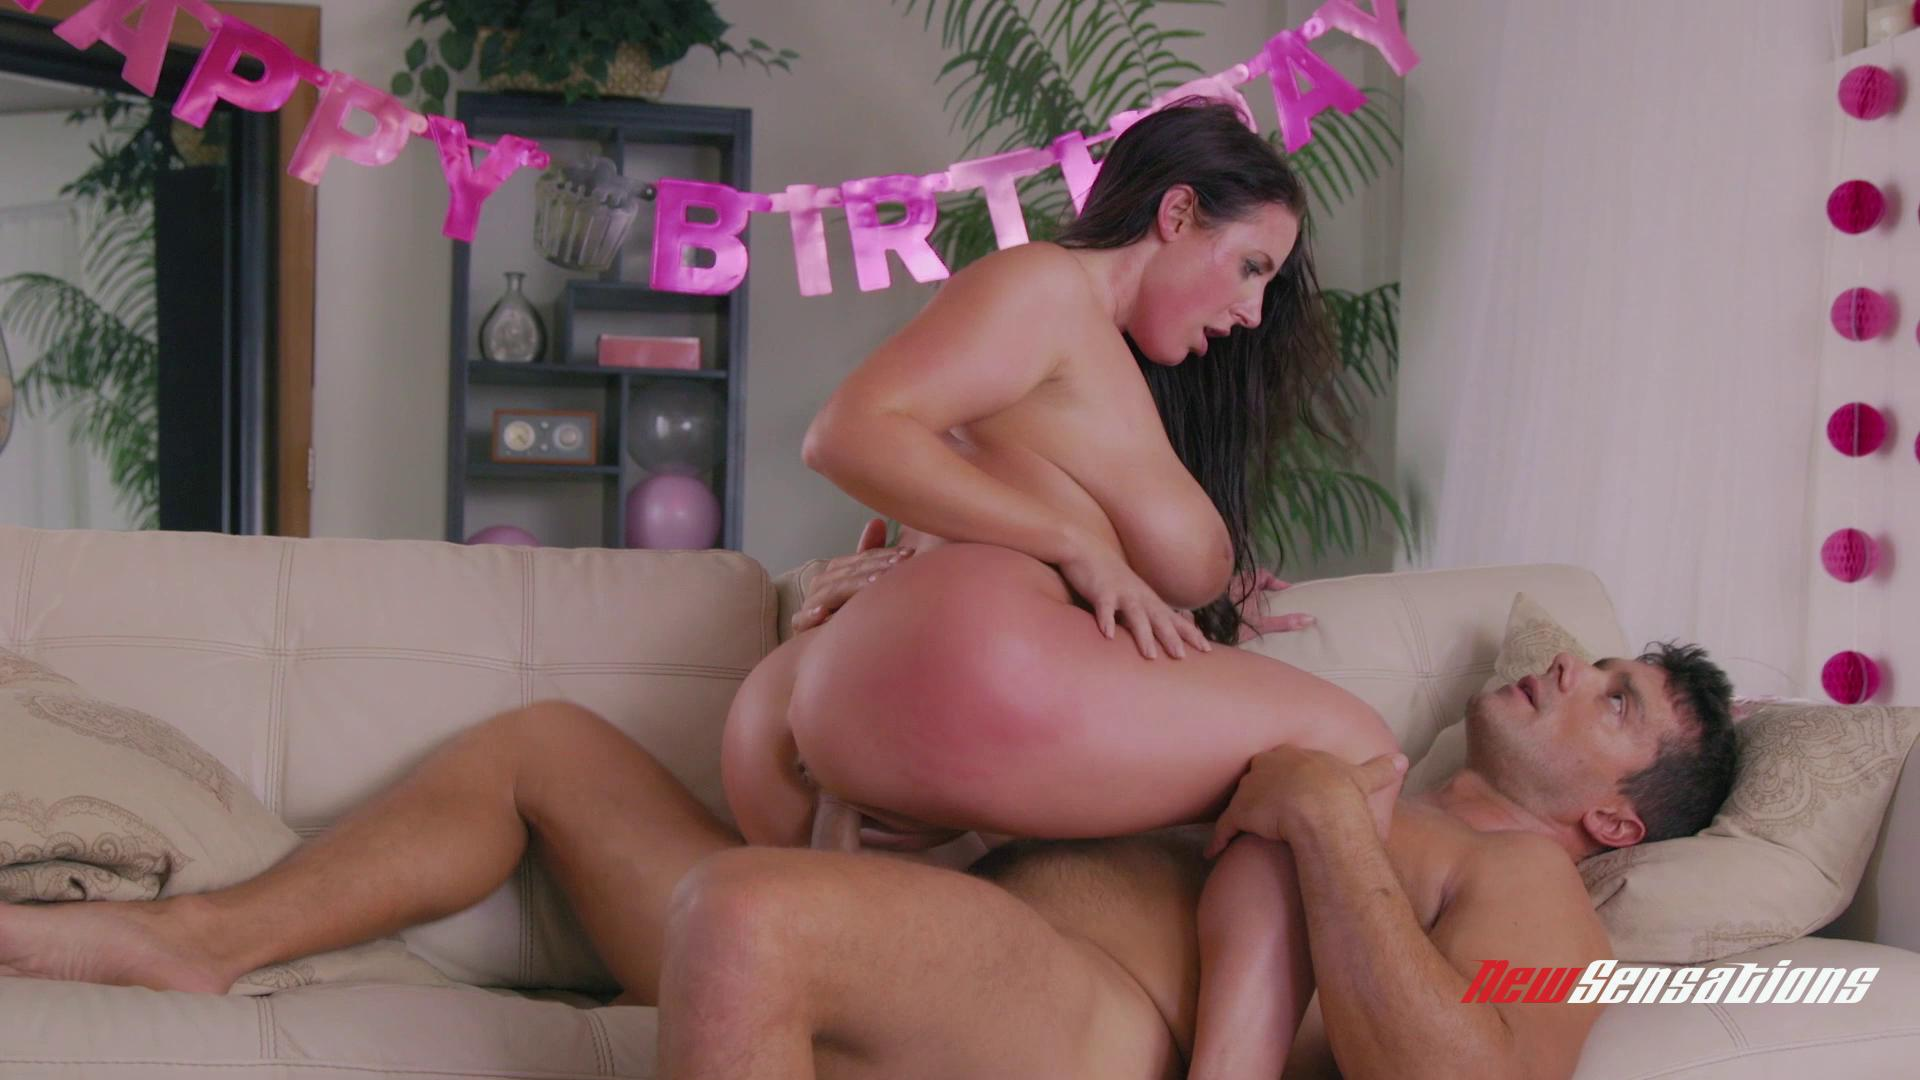 NewSensations – Angela White